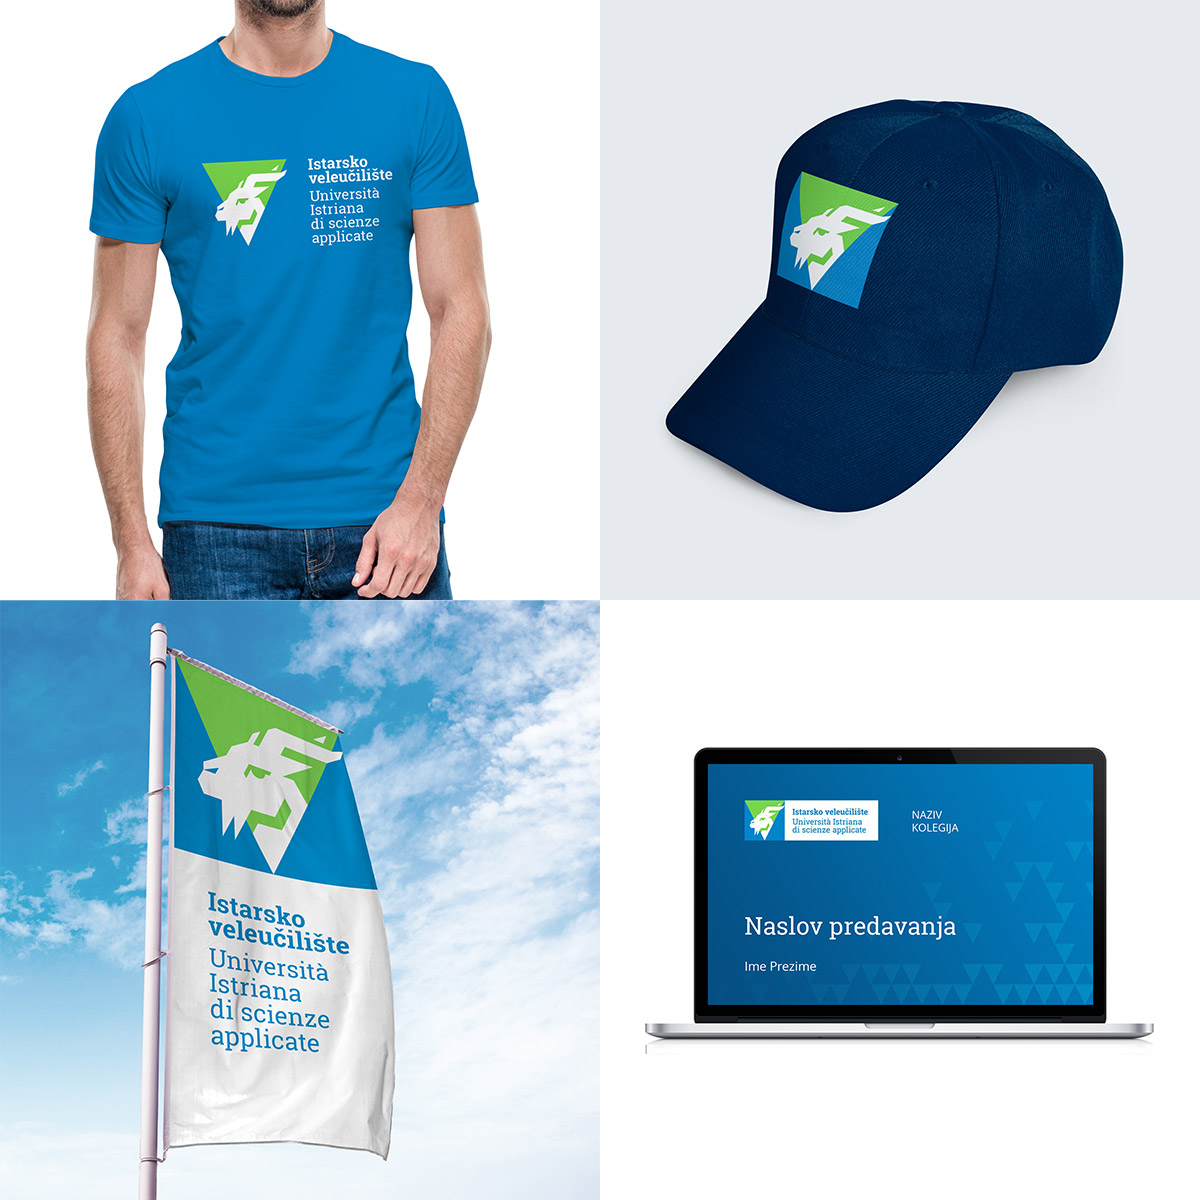 Istarsko veleuciliste brand identity - Apparel, flag and presentation